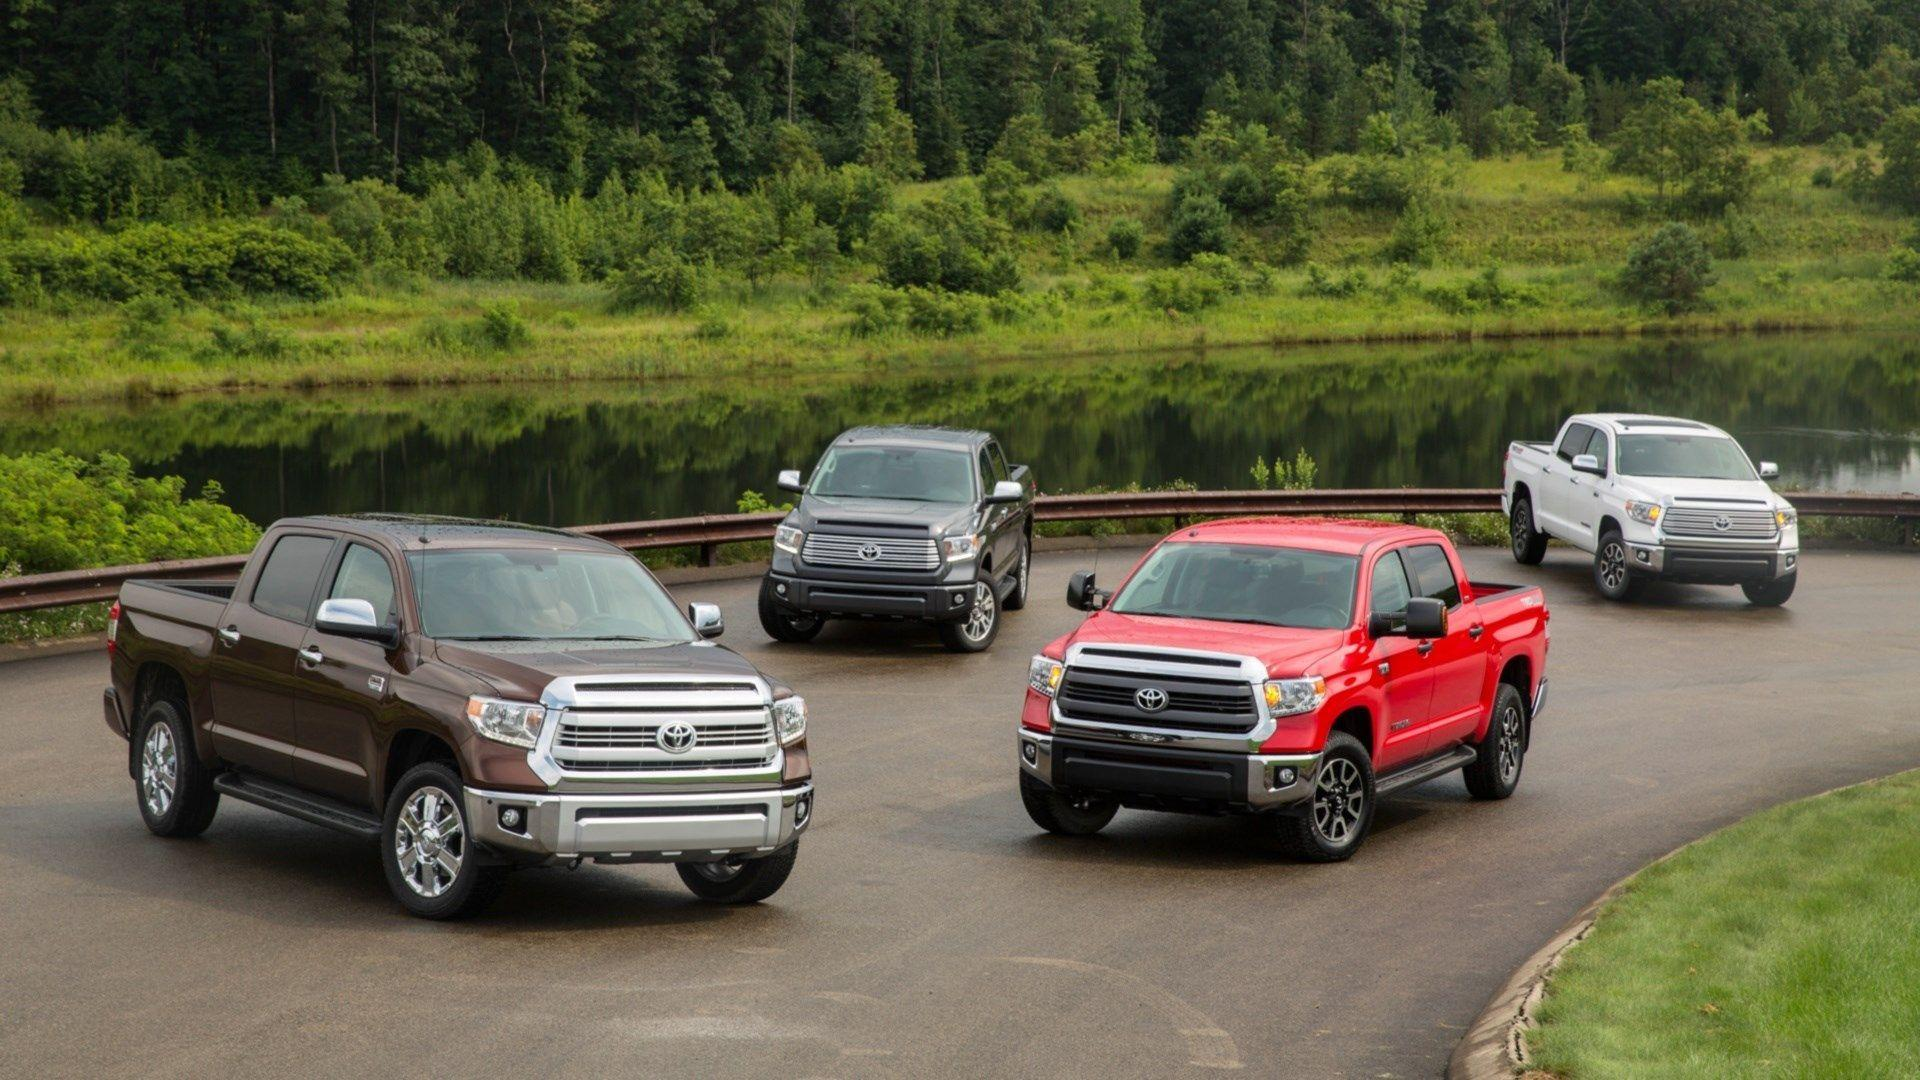 free desktop wallpapers downloads toyota tundra